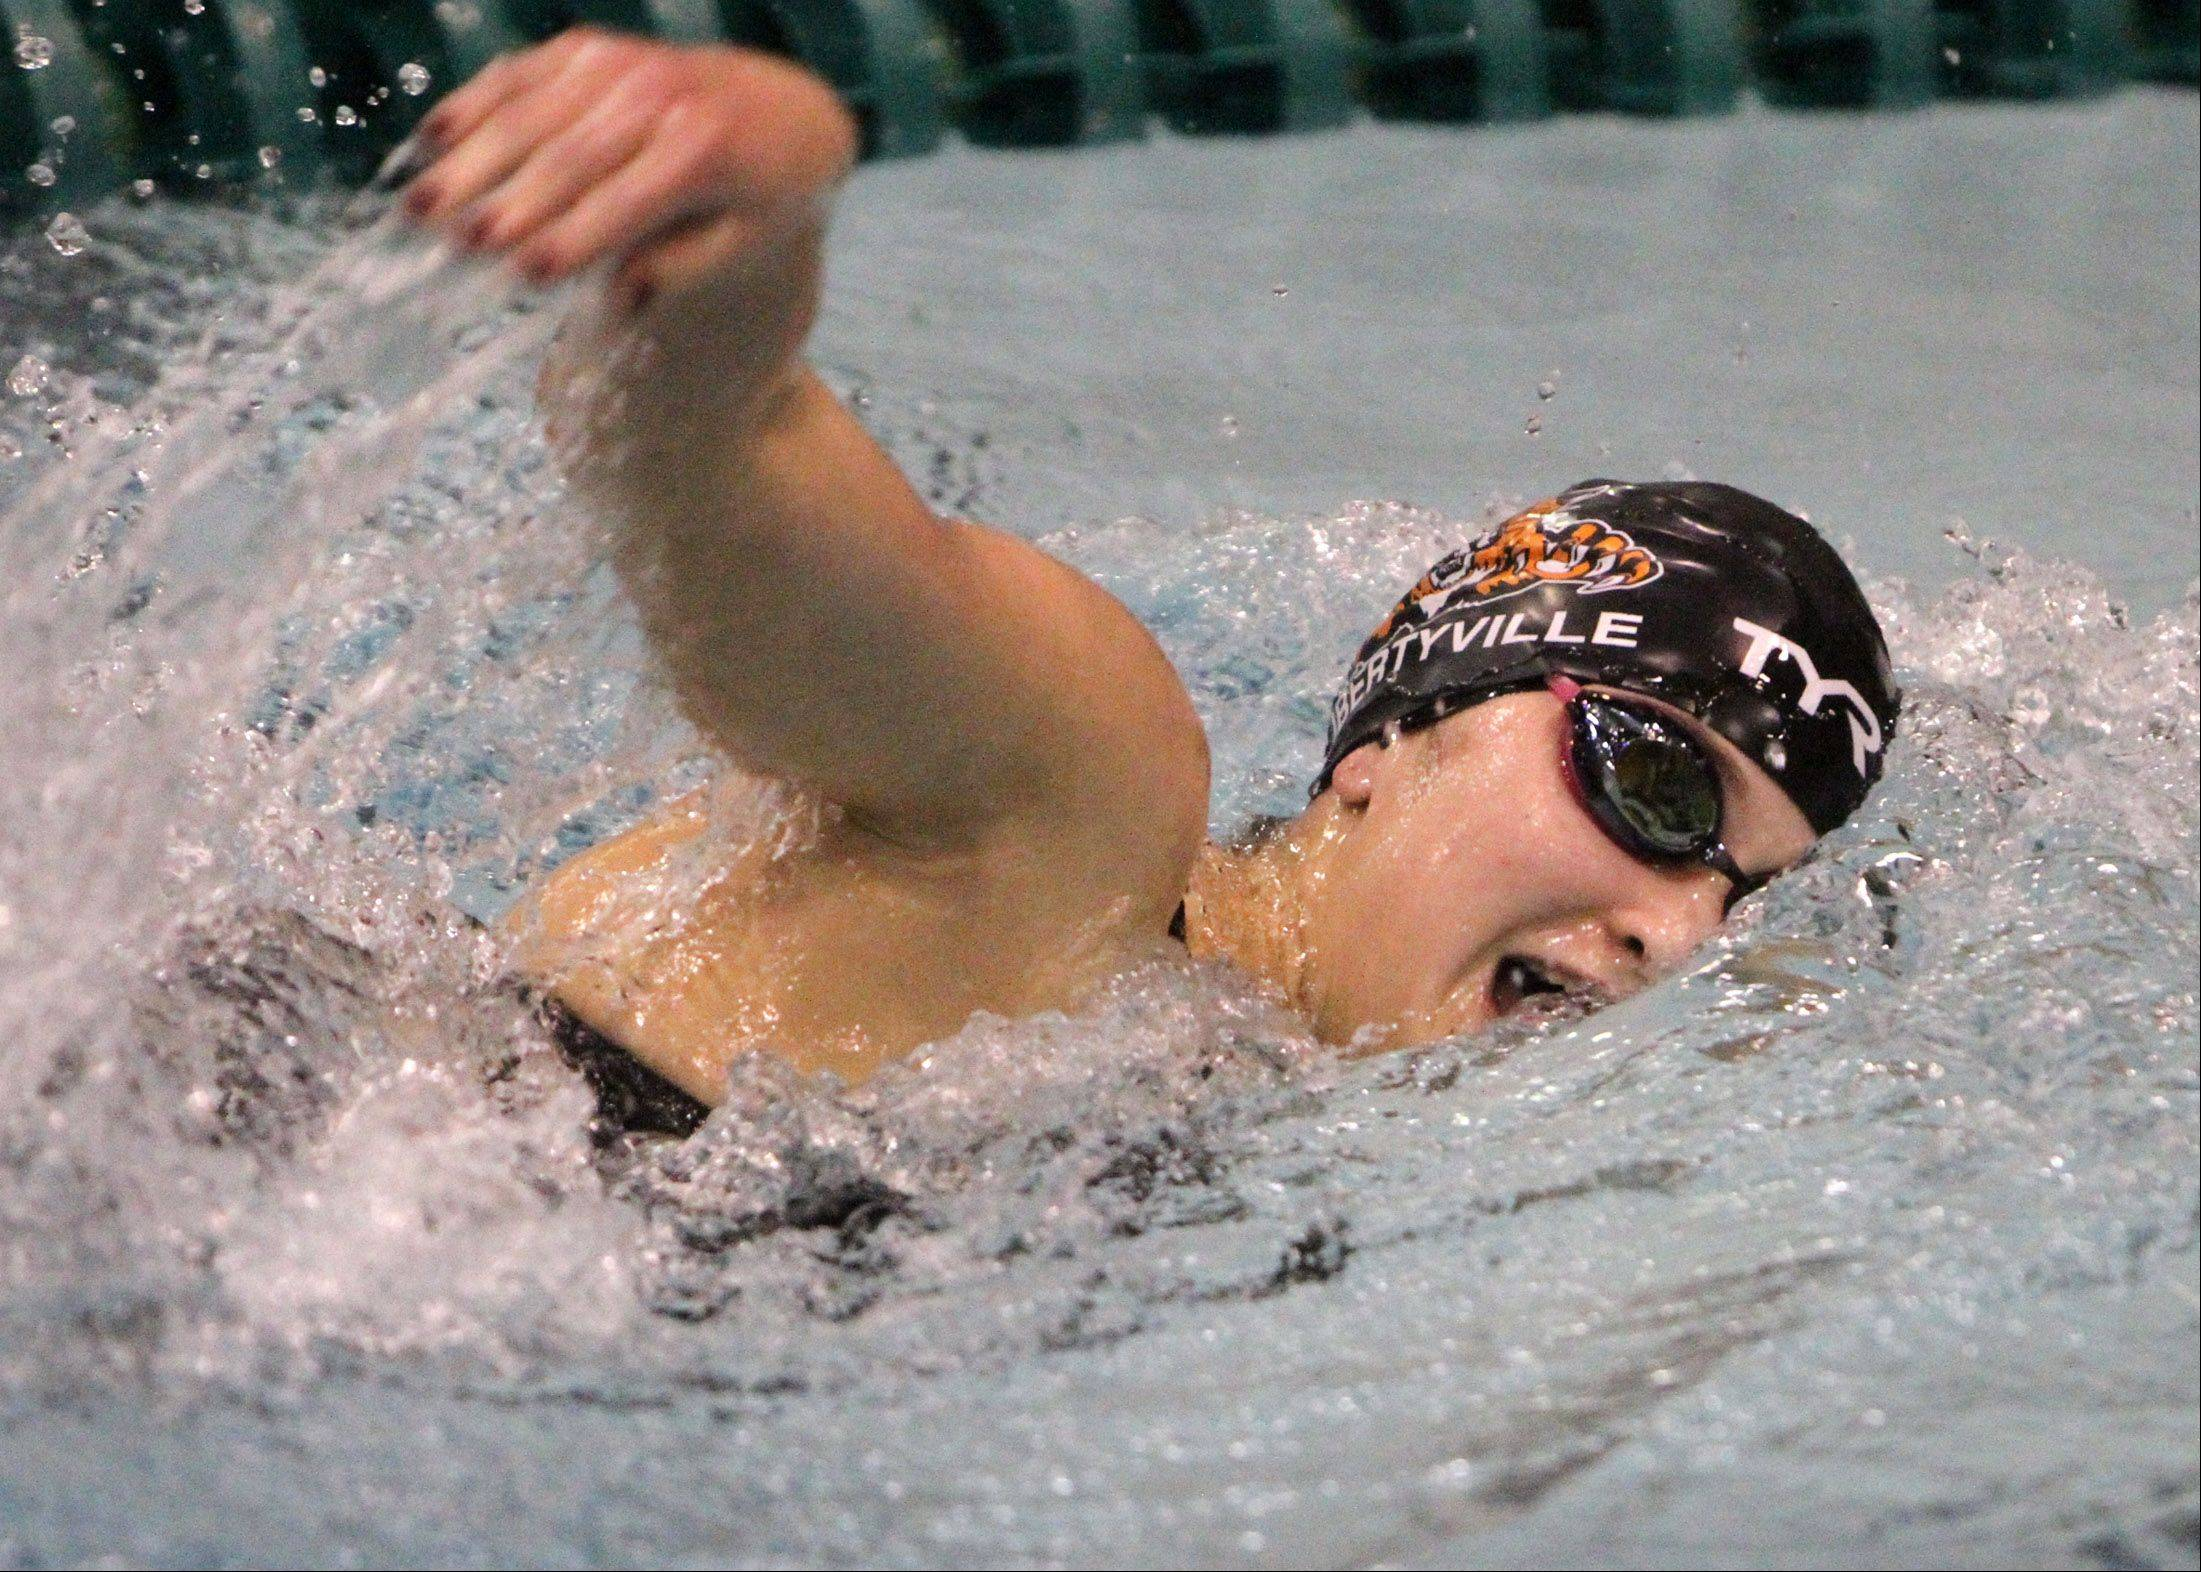 Libertyville's Morgan Dickson finished third in the 500-yard freestyle with a time of 4:55.64 minutes at the IHSA state final preliminaries.